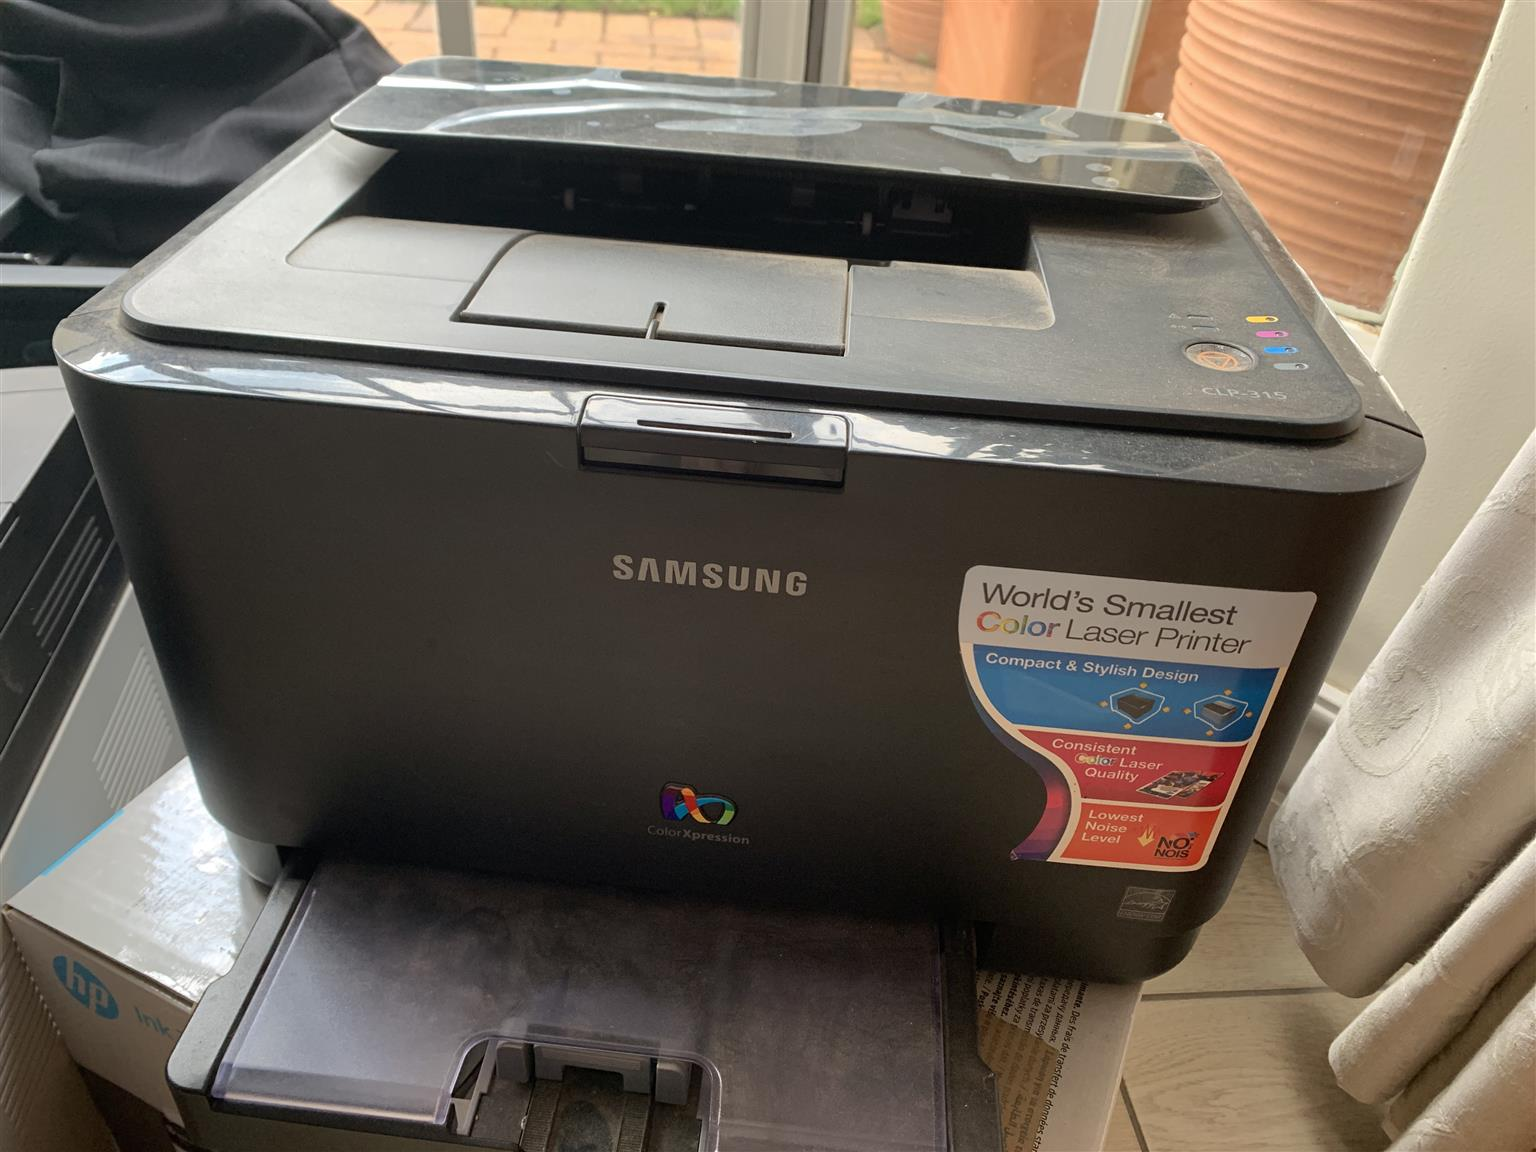 Printers for sale. One by HO and two by Samsung